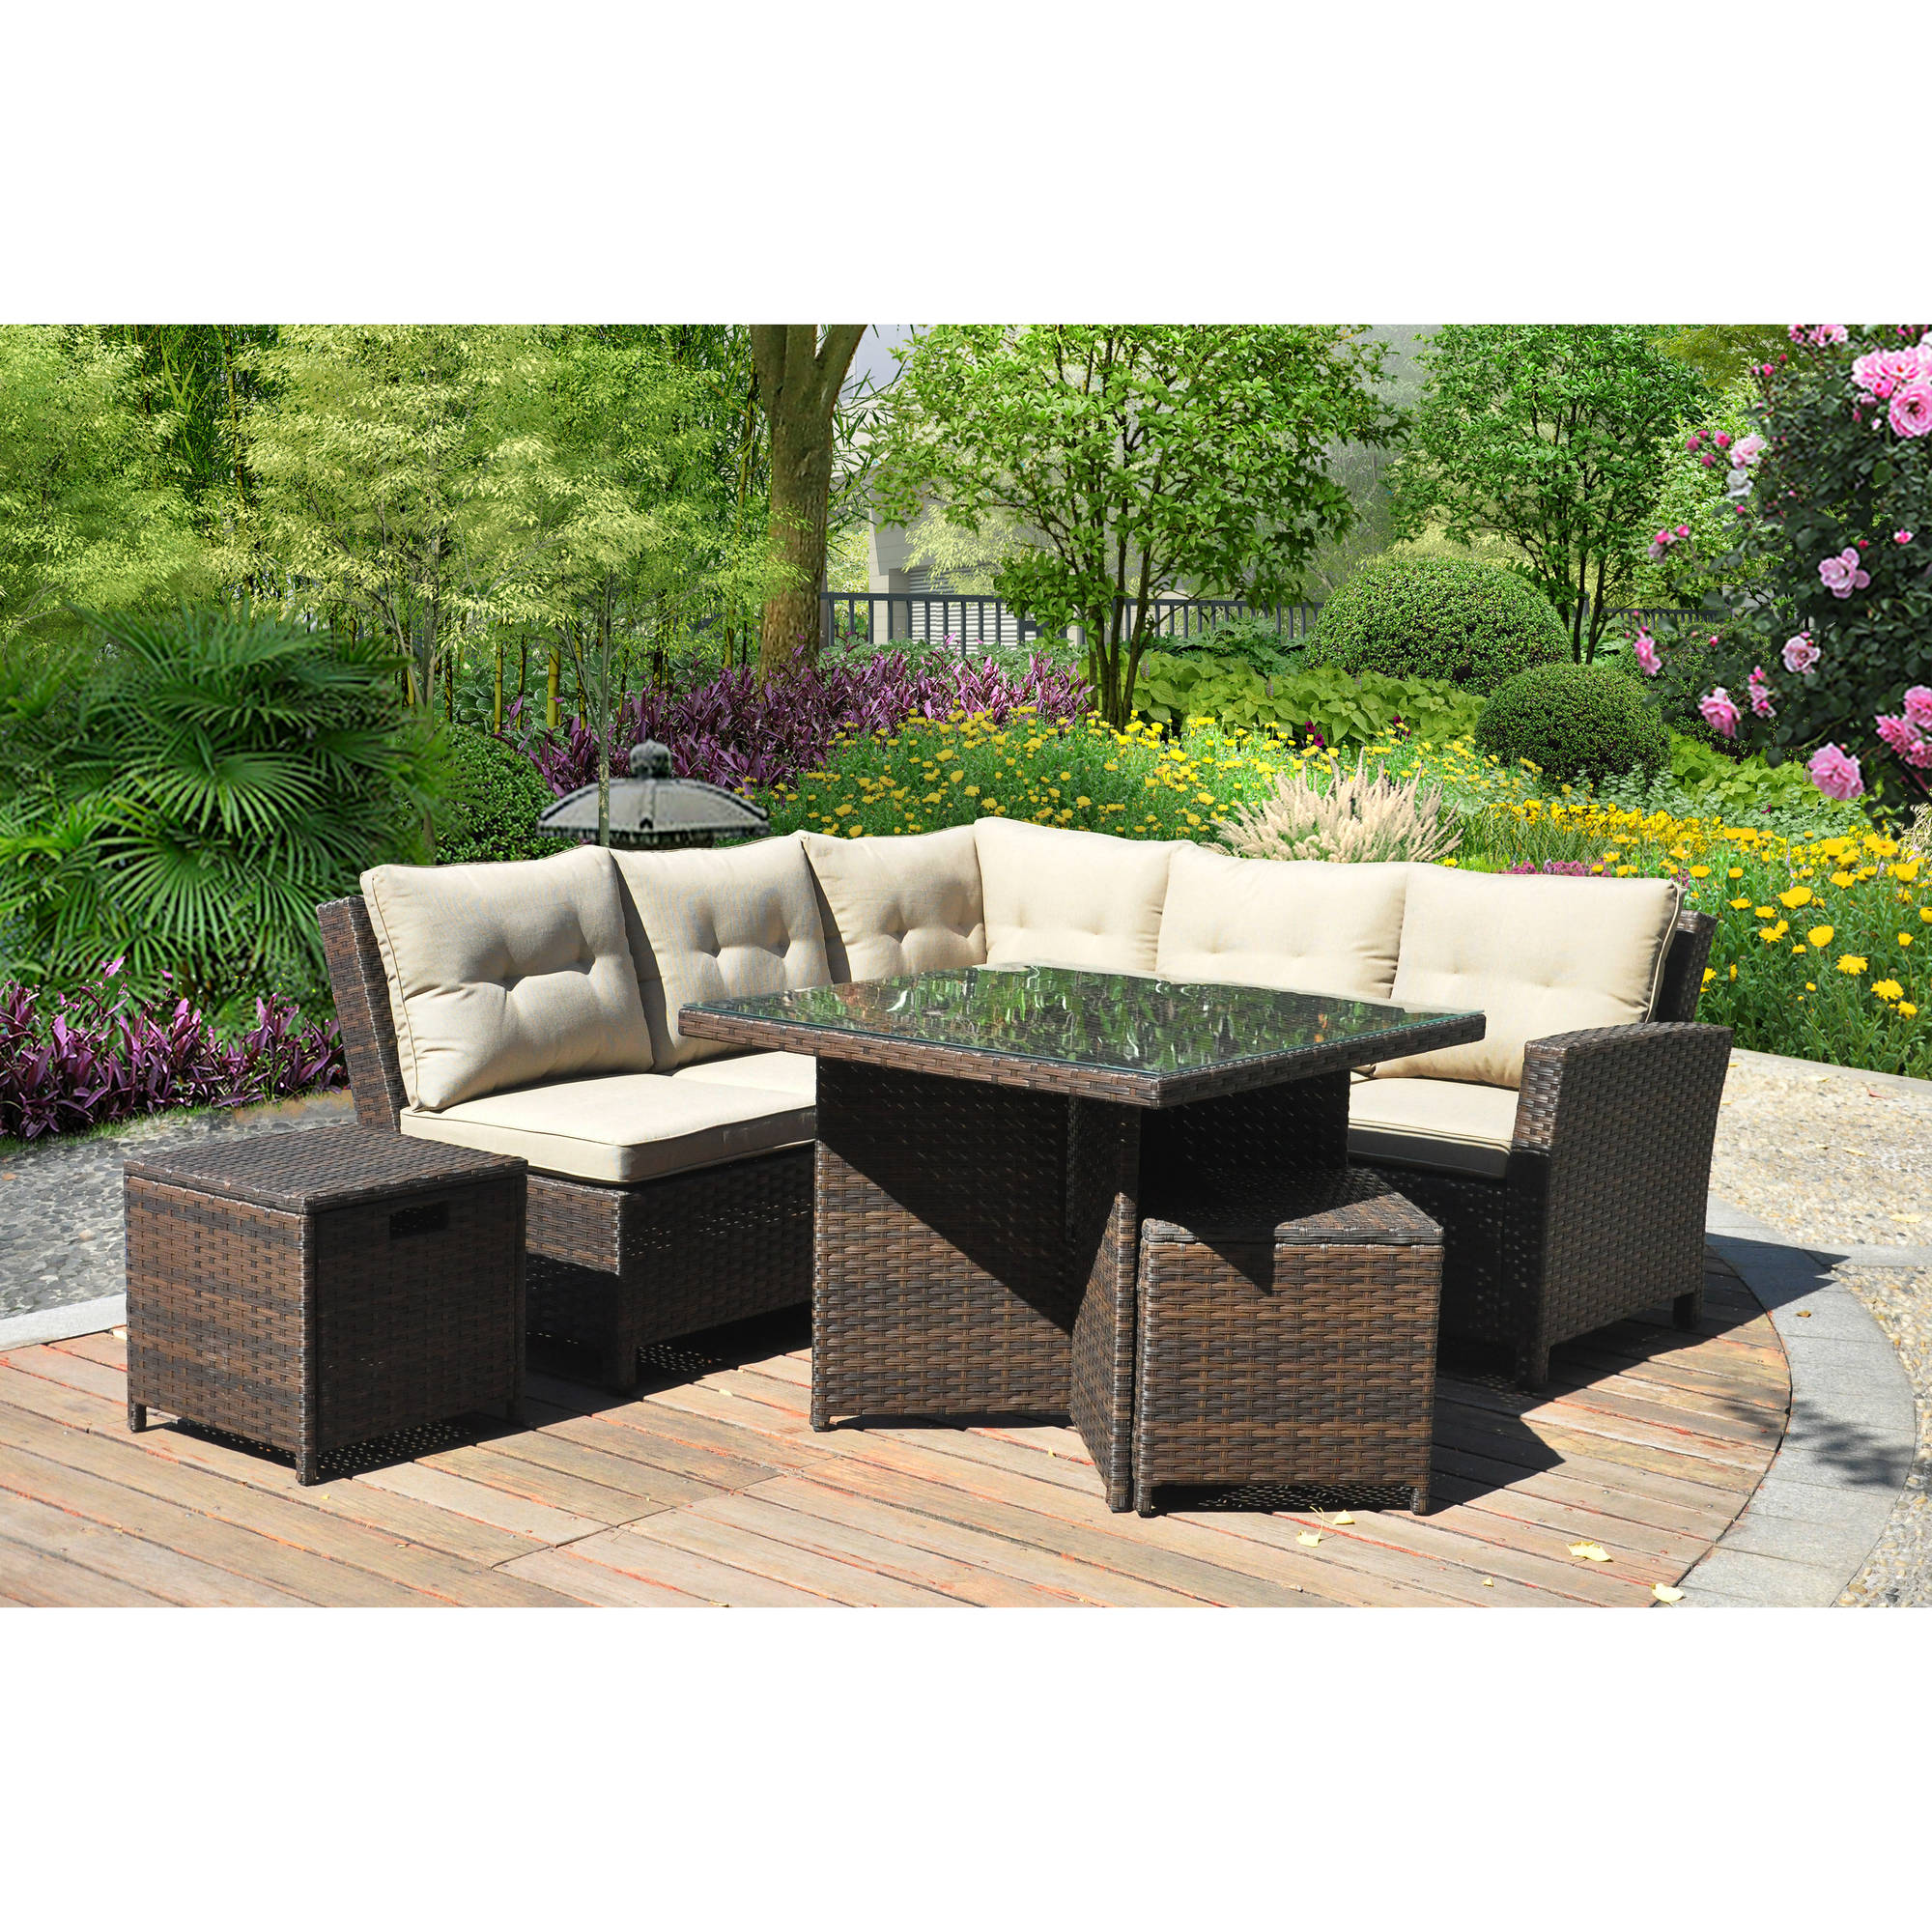 Marvelous Better Homes And Gardens Baytown 5 Piece Woven Sectional Sofa Set, Seats 5    Walmart.com